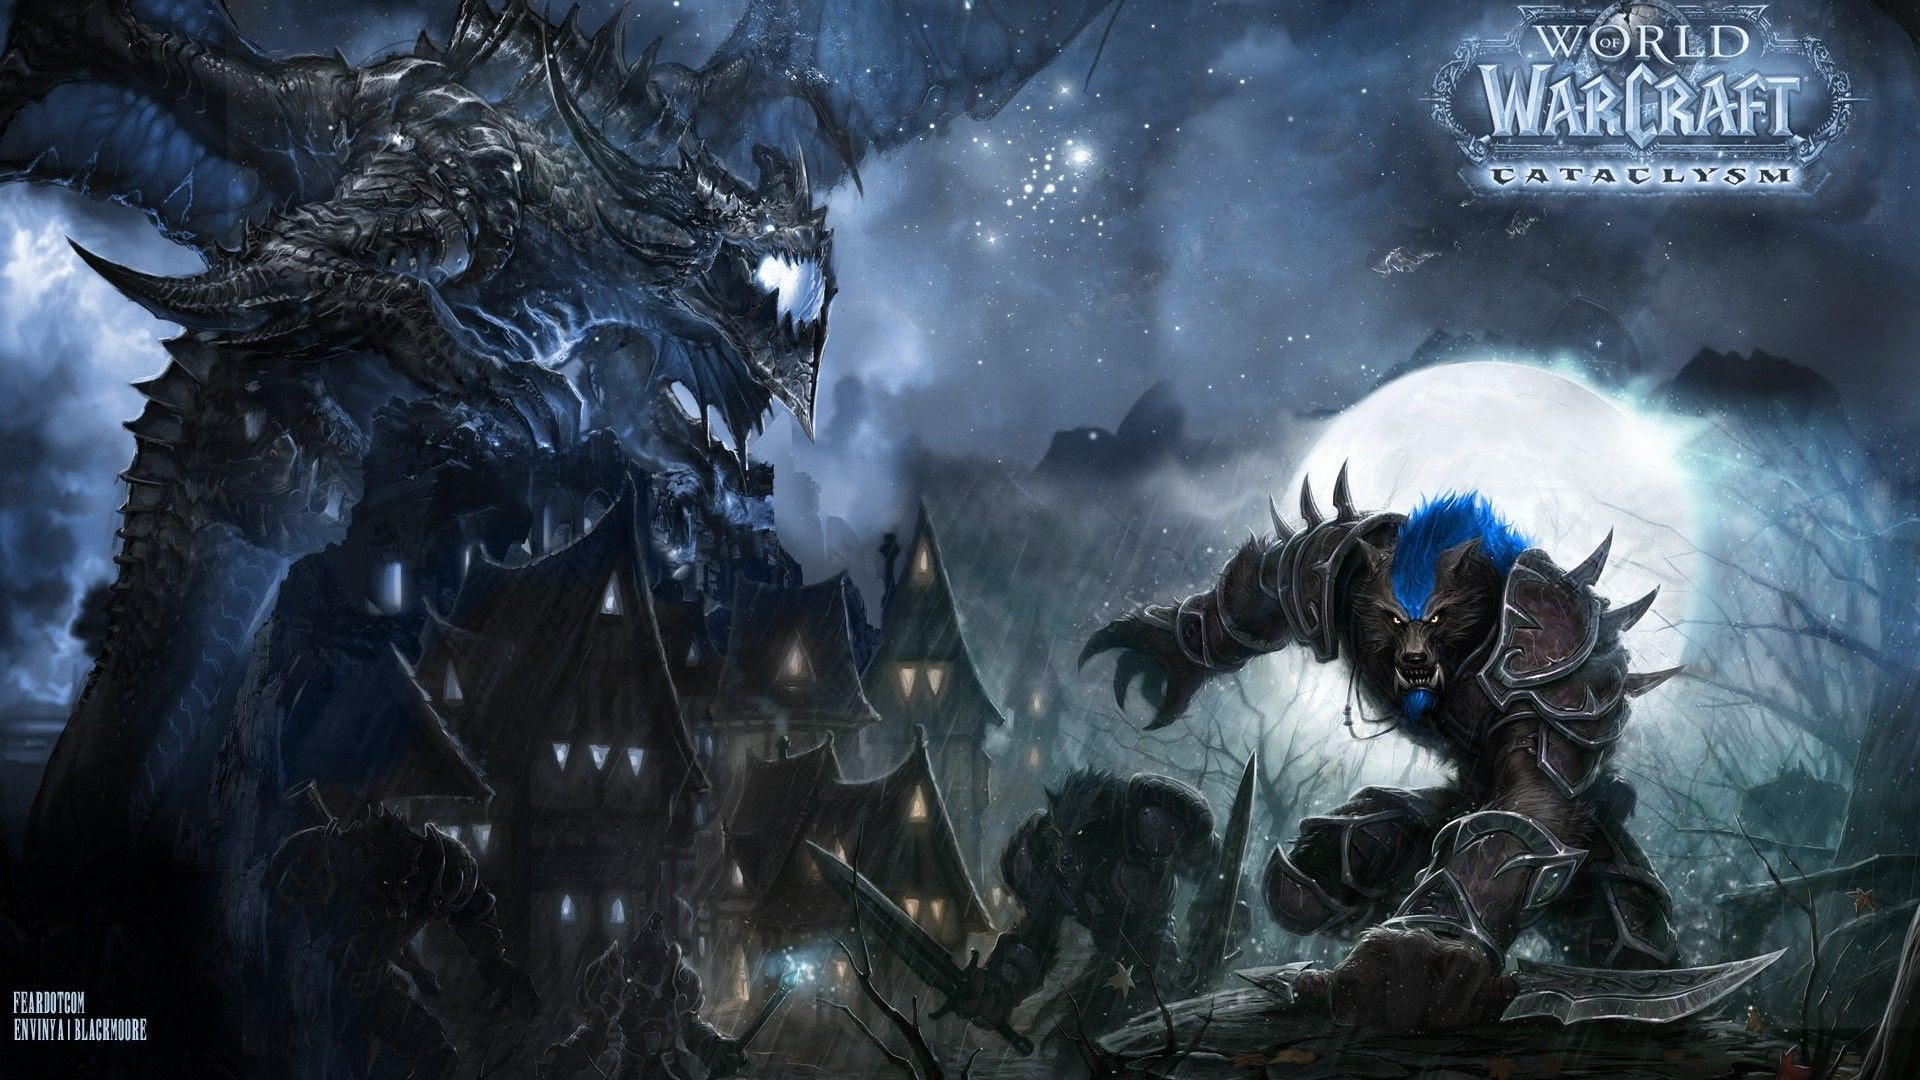 World Of Warcraft Hd Wallpapers Desktop Backgrounds Mobile 1920x1080